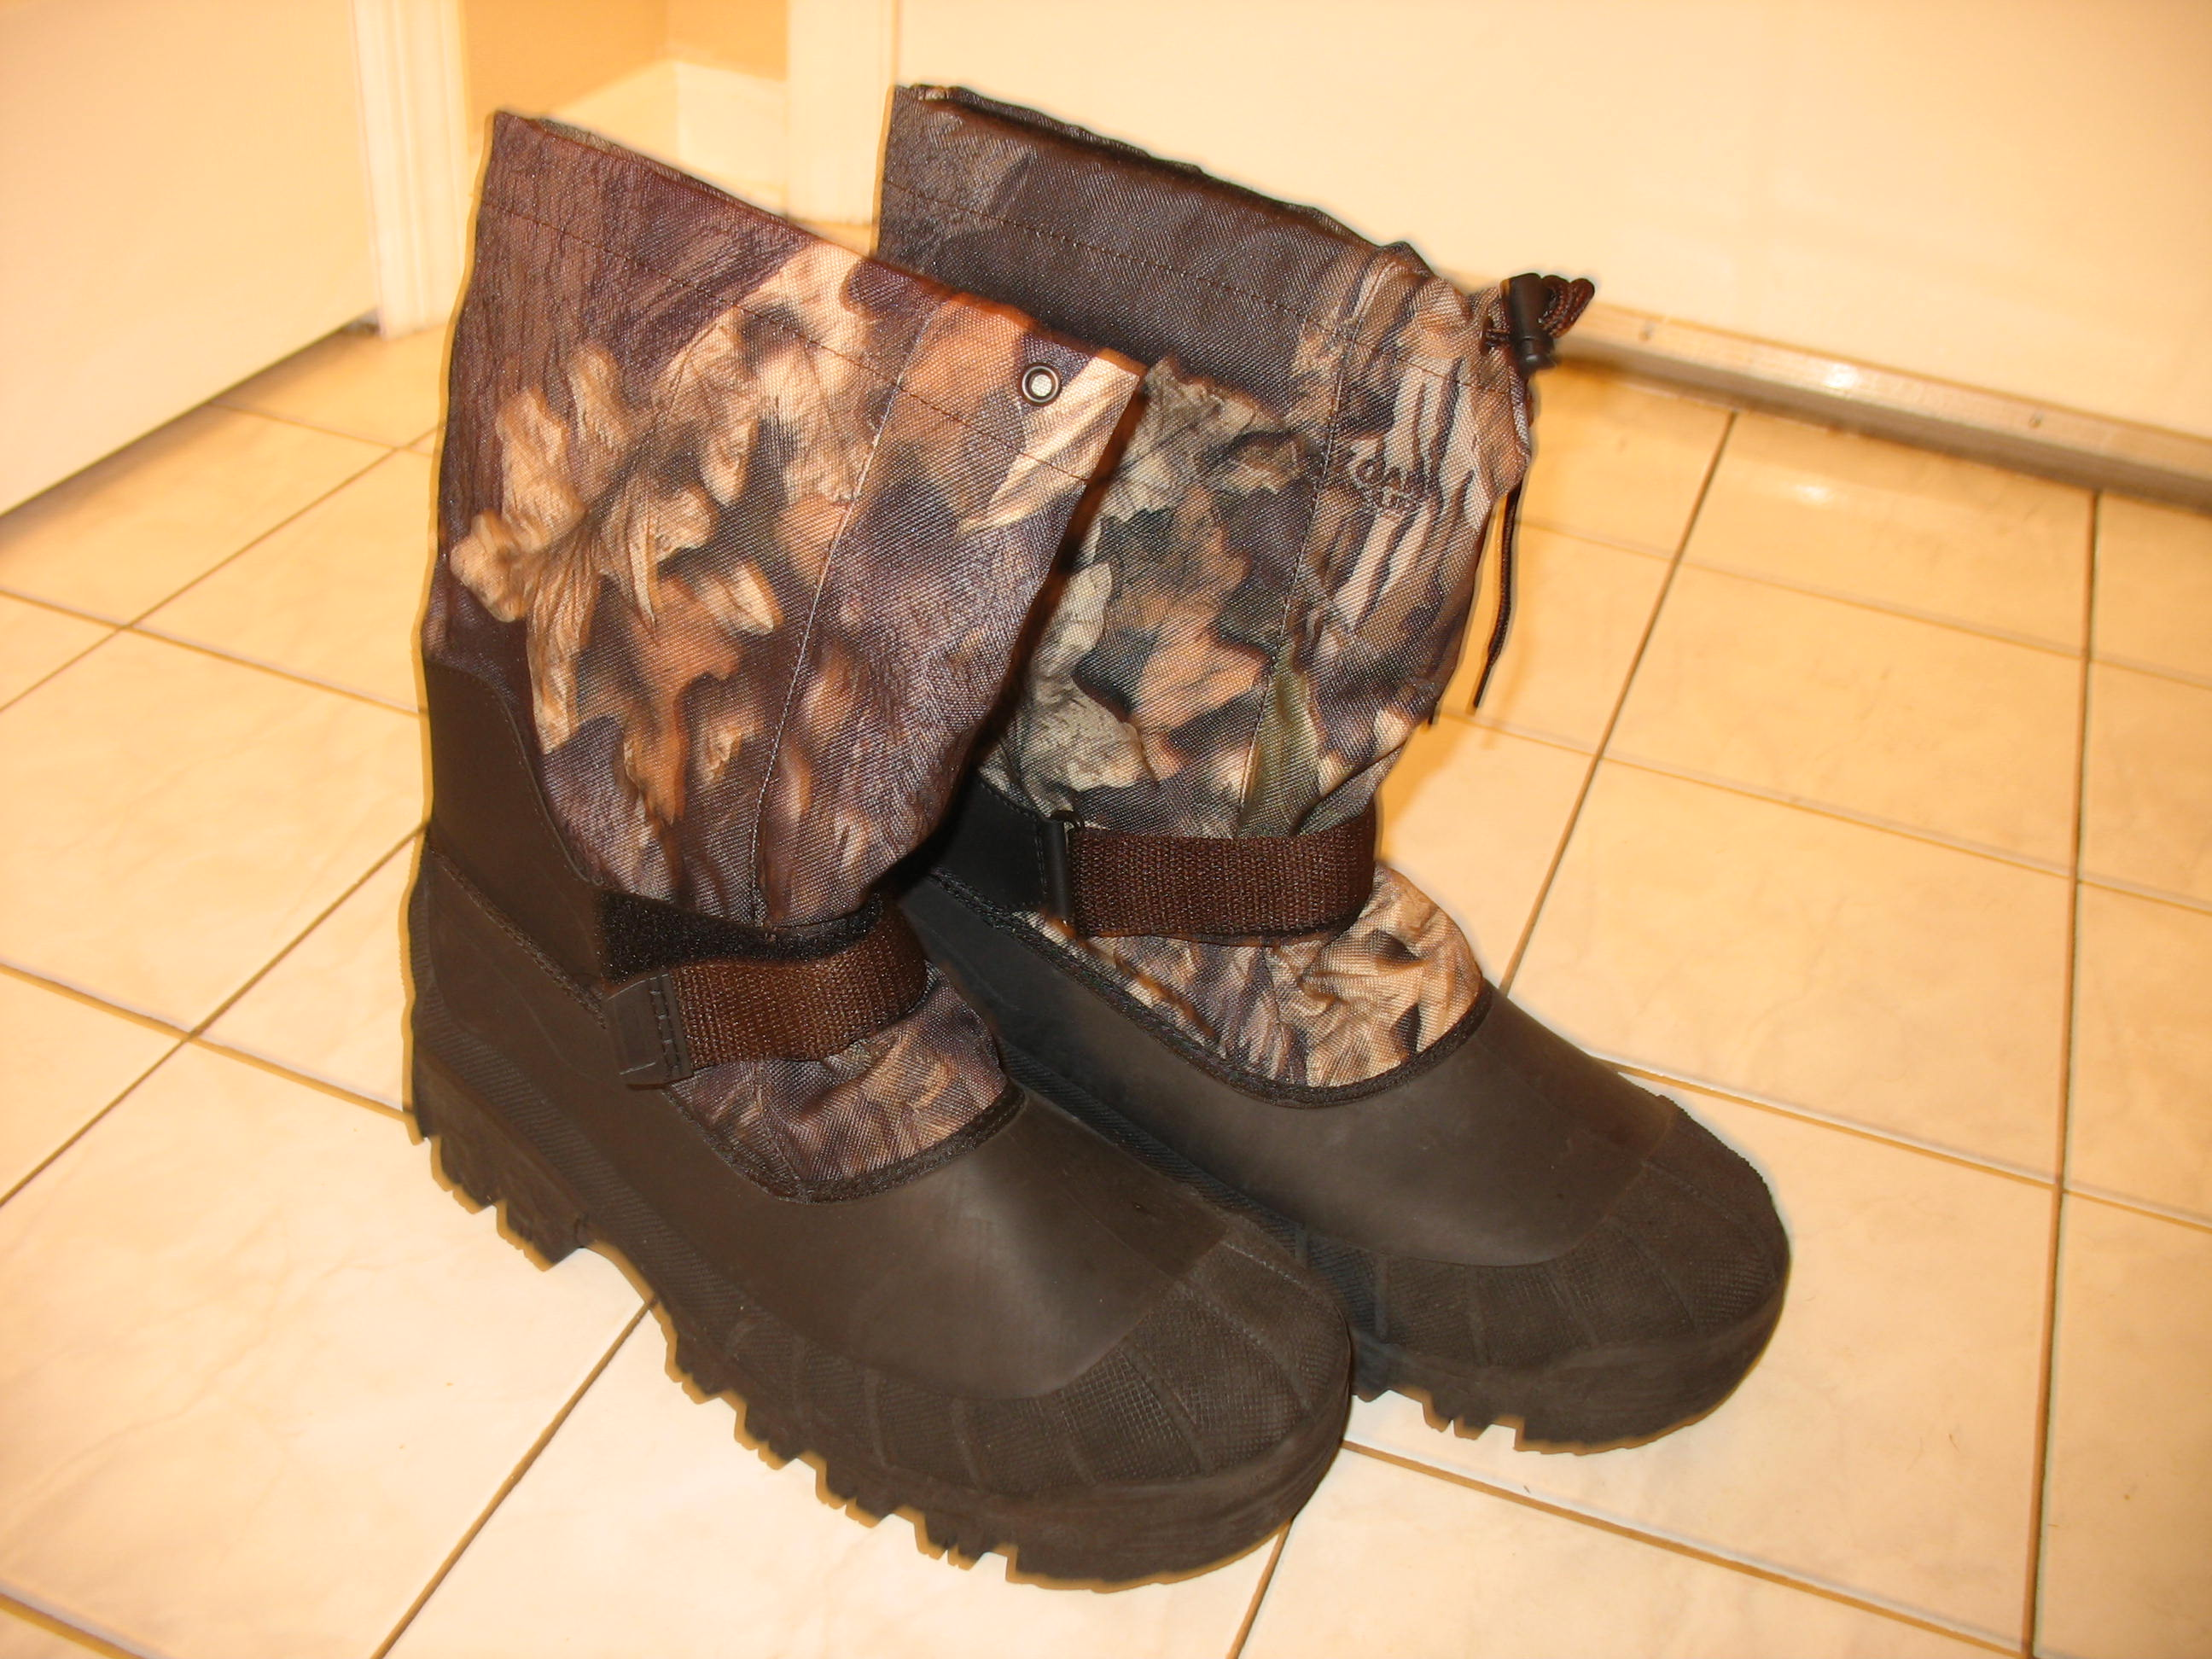 BOOT FOR MAN (SIZE 11)